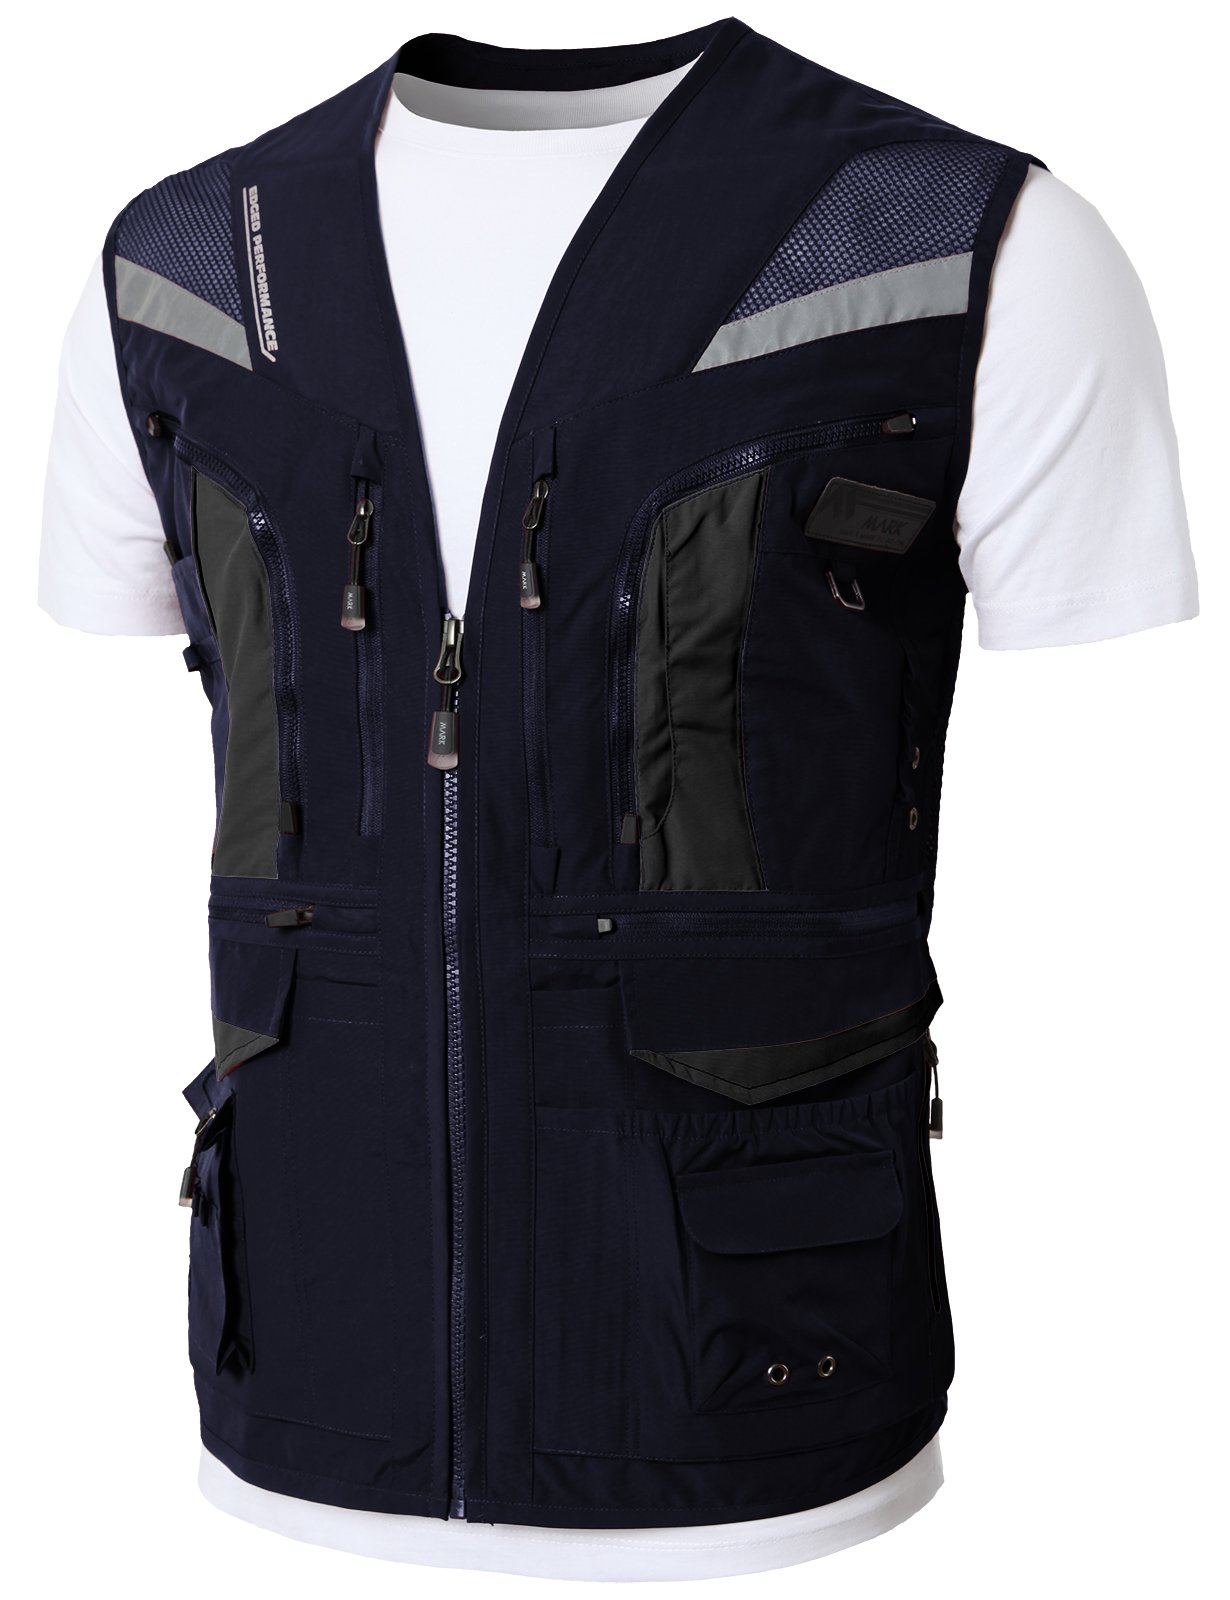 H2H Mens Casual Work Utility Hunting Fishing Vest Travels Sports Mesh Jacket with Multi-Pockets Navy US L/Asia XL (KMOV0144)